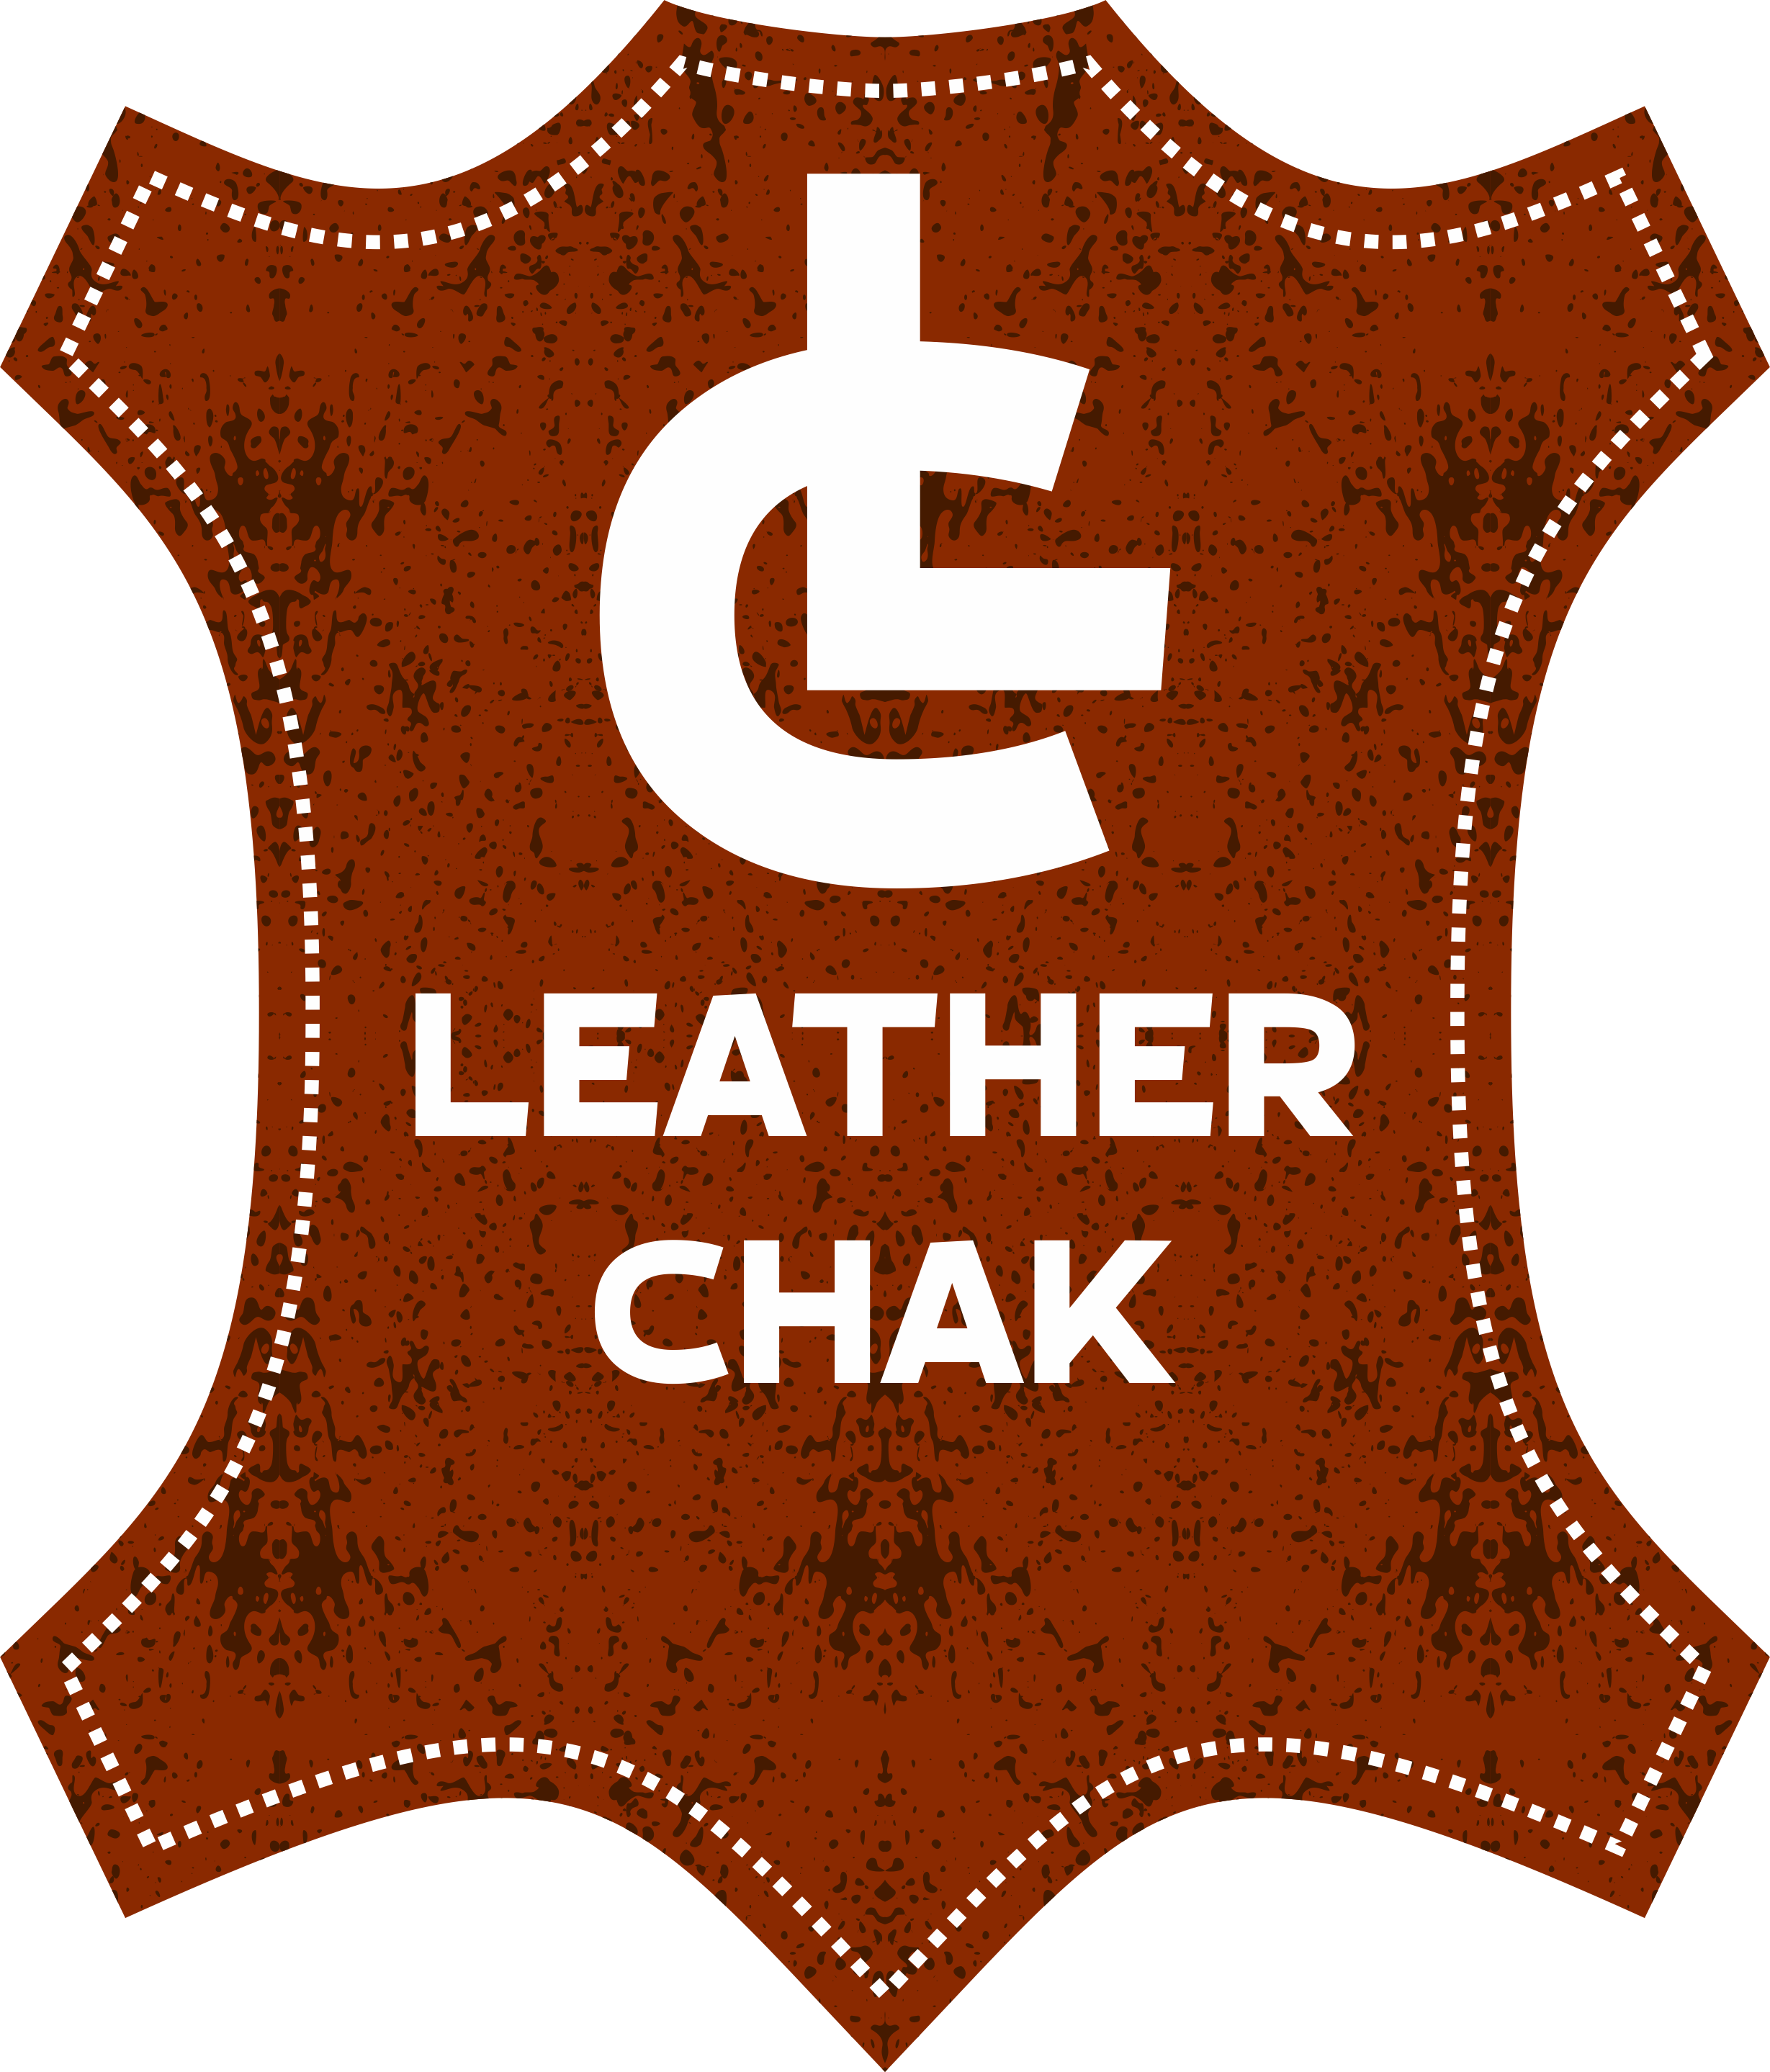 Leather Chak